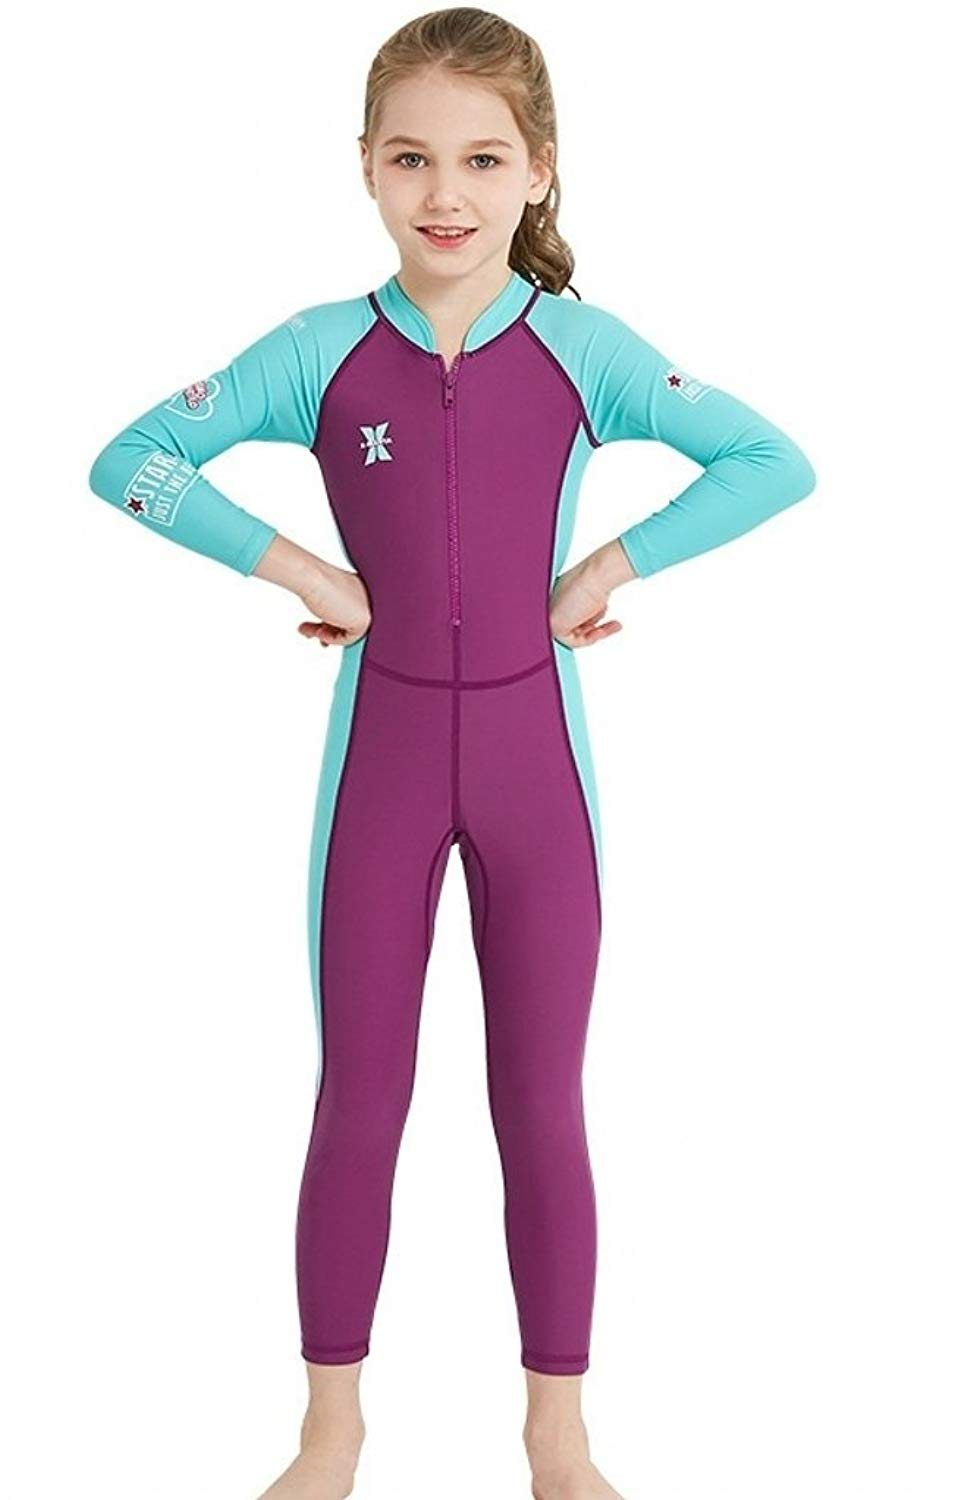 d806663ec4b4e Get Quotations · ESEL Kids Boys Girls One-Pieces Swimsuits UV Protection  Keep Warm Diving Suits